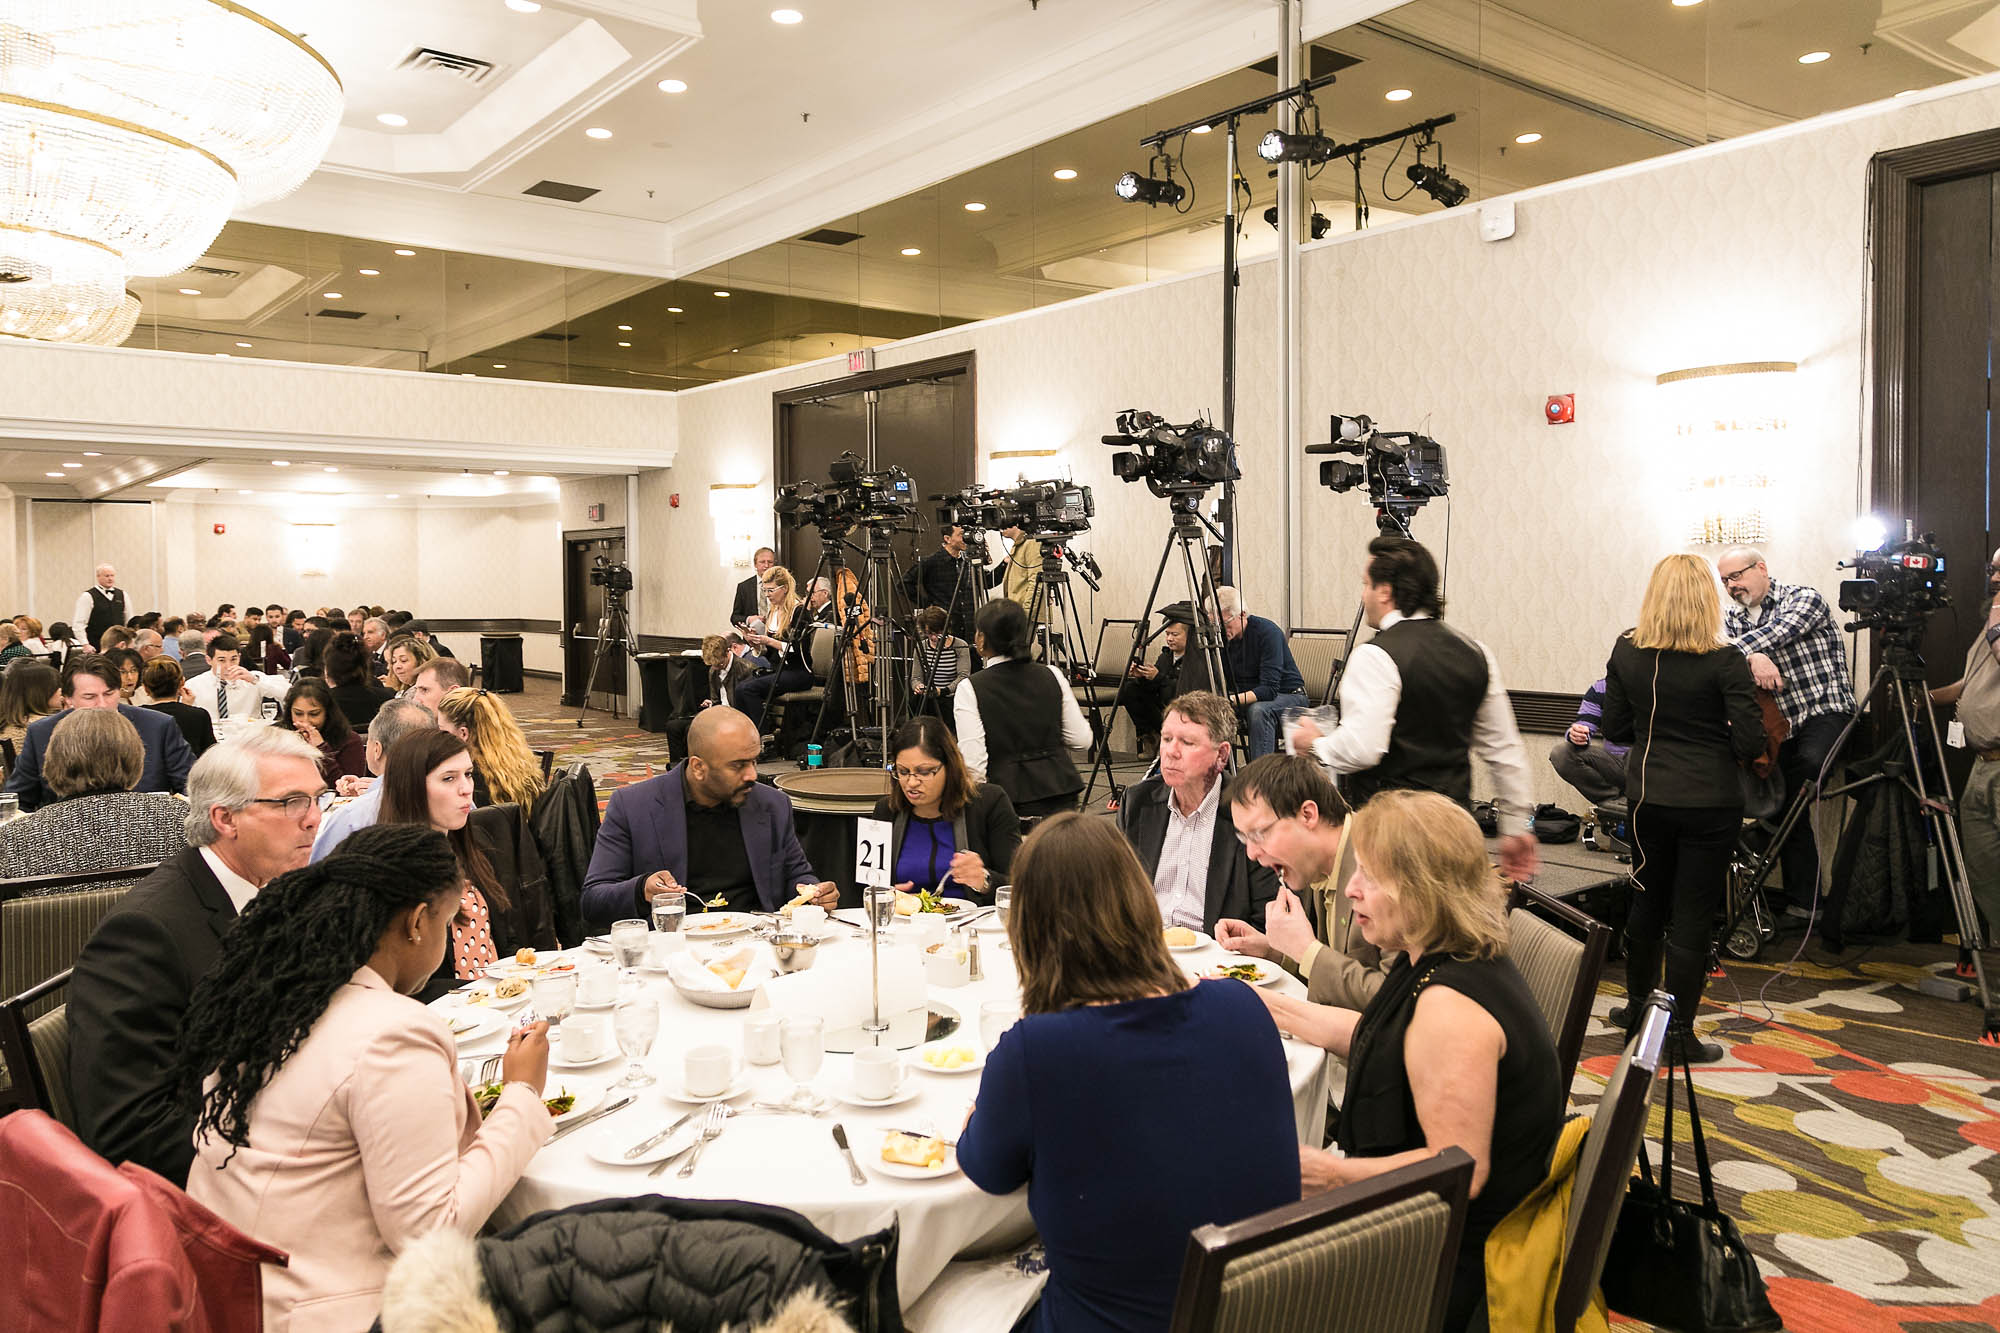 view of dining room, Toronto Delta East hotel during Scarborough Business Assocation Lunch with Toronto Mayor John Tory